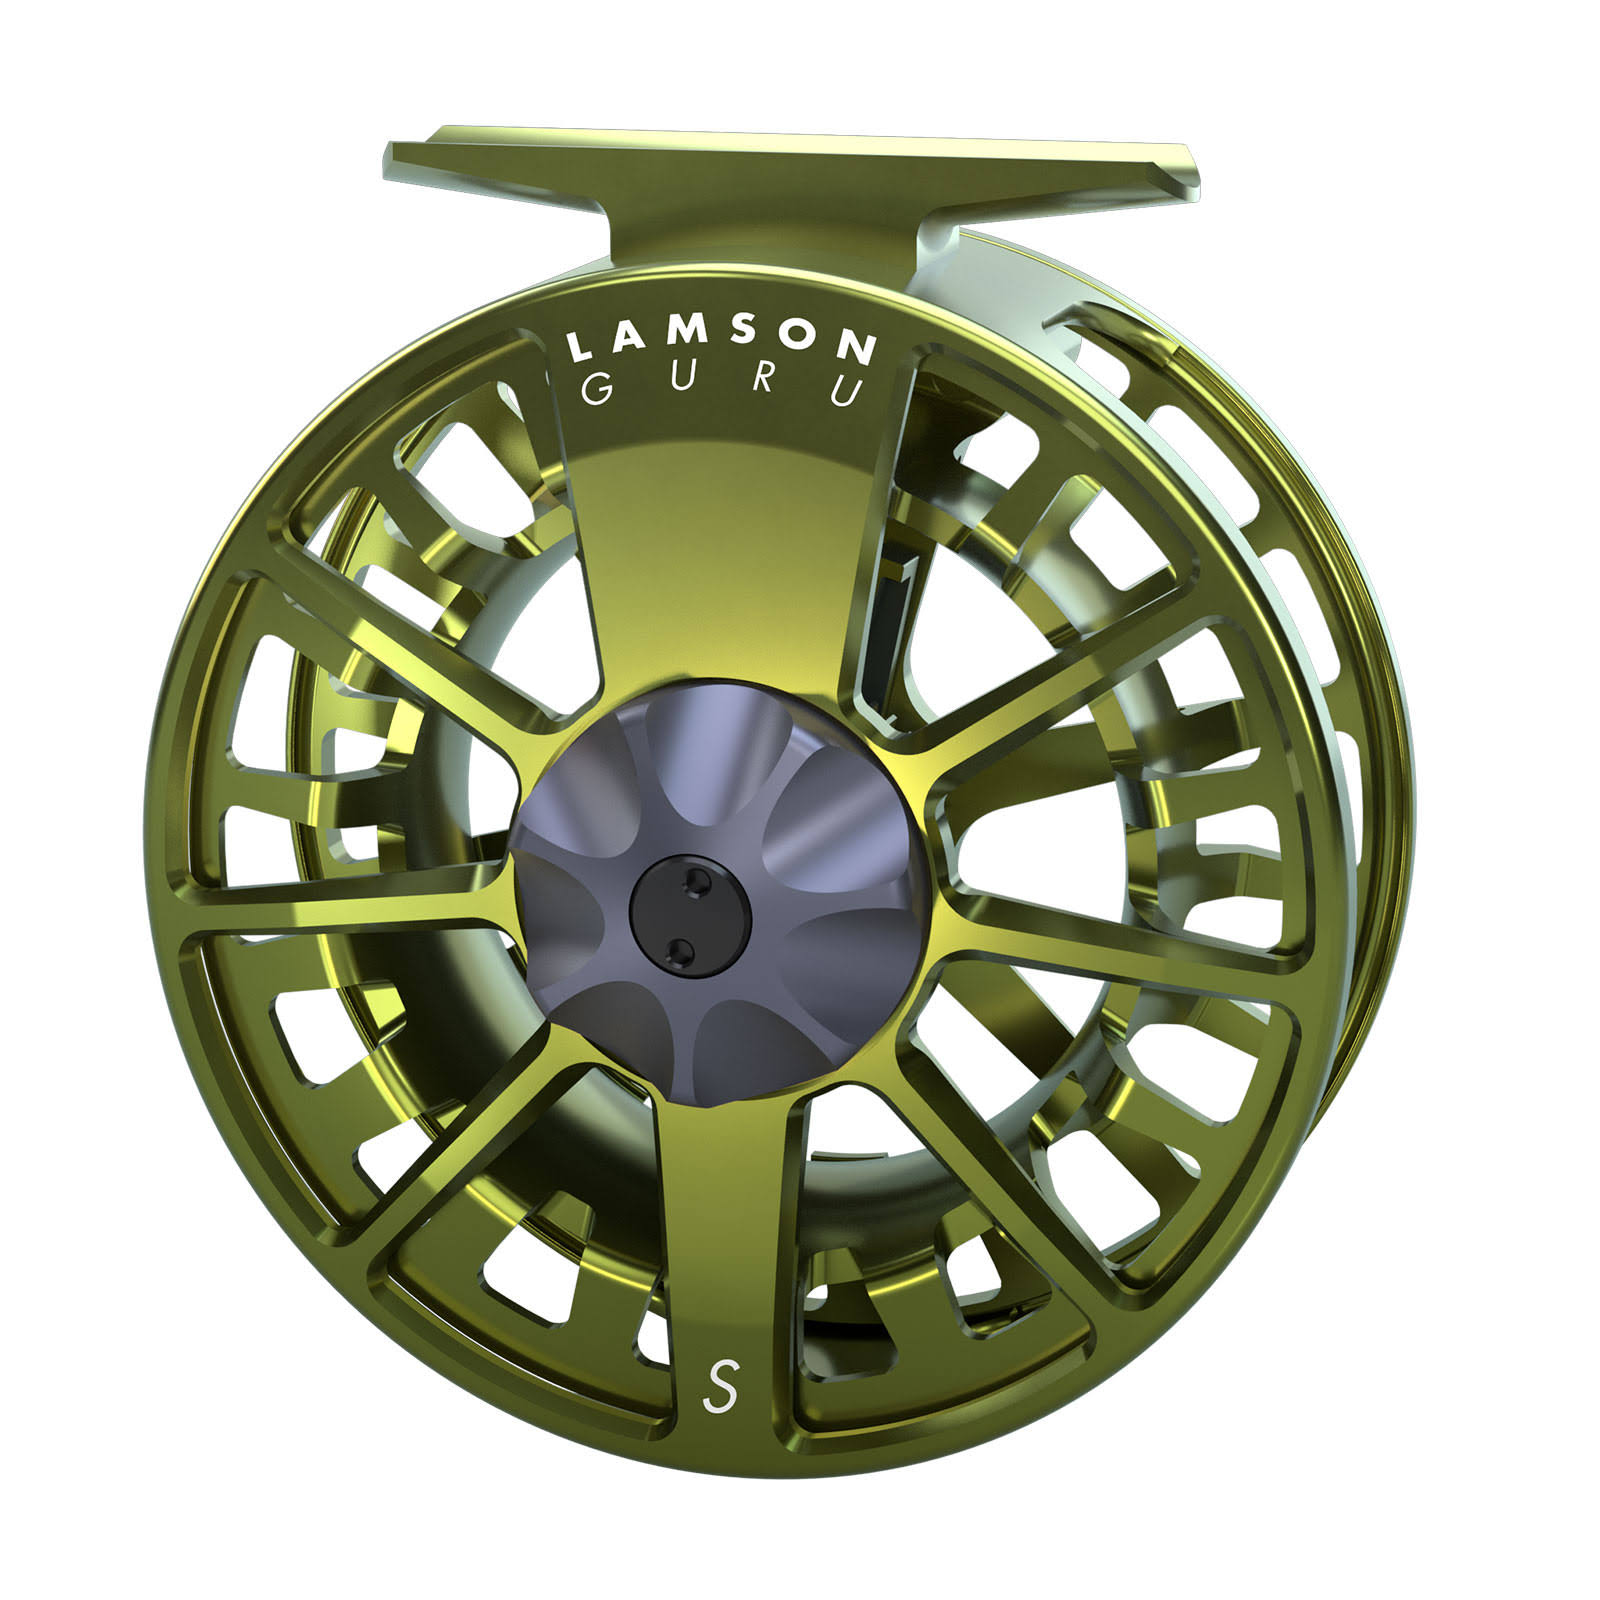 Lamson Guru S-Series -7+ Fly Reel OG